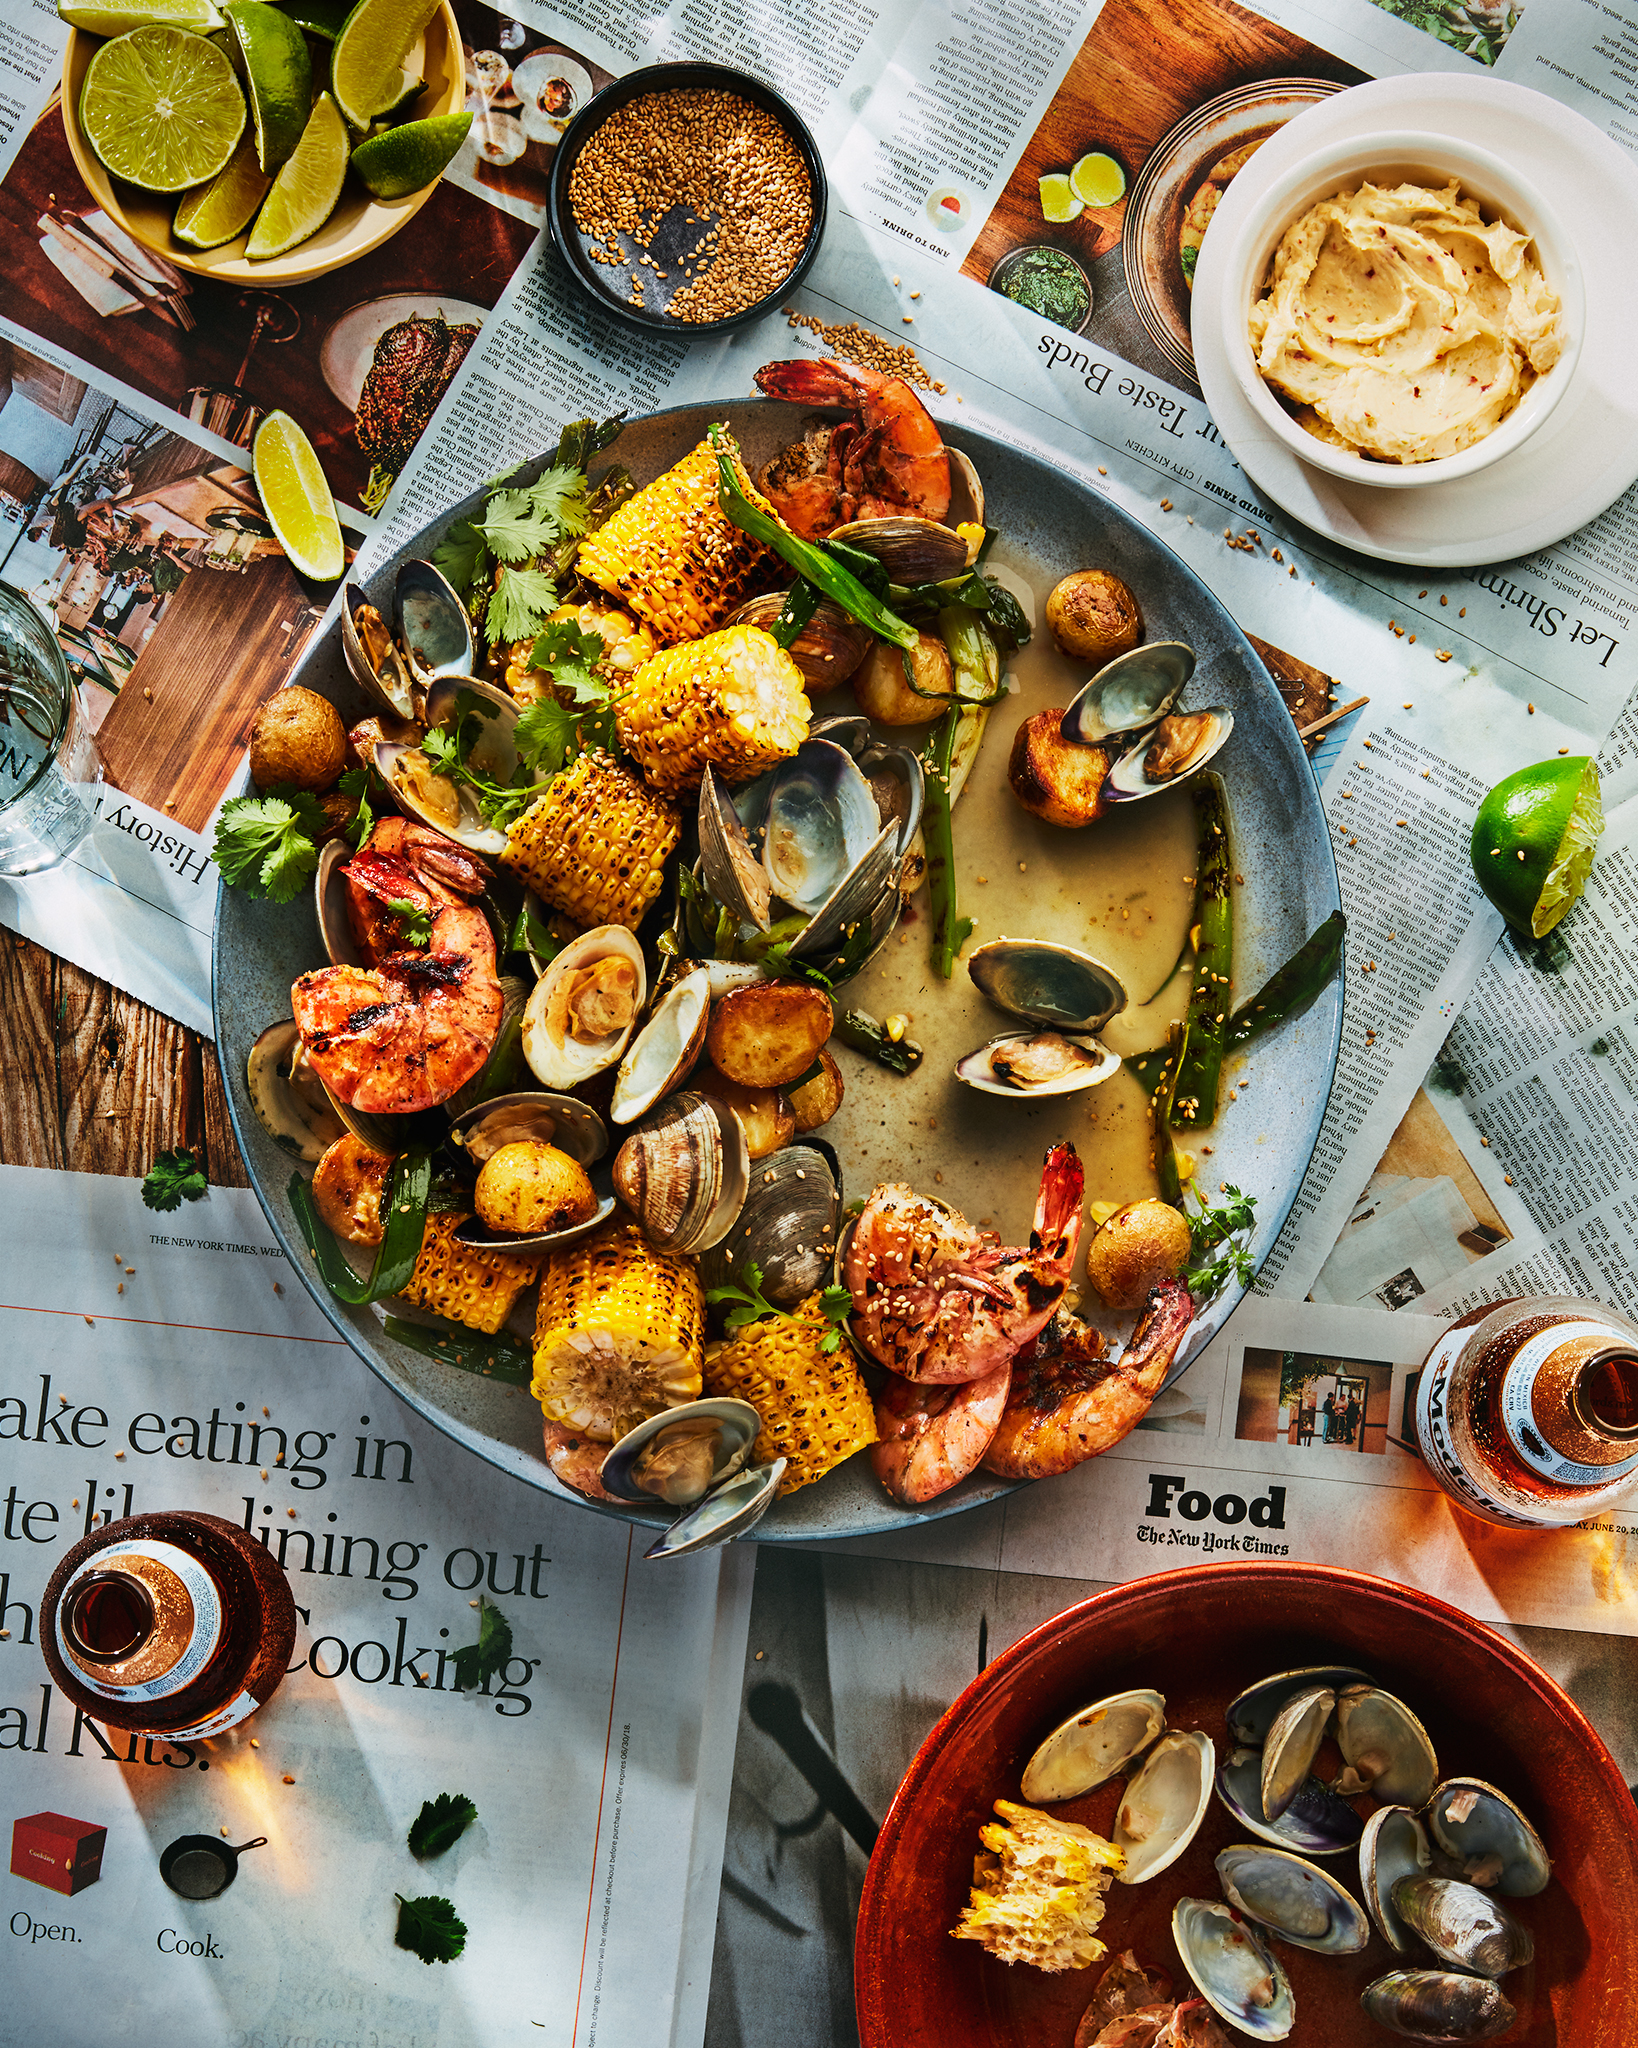 Grilled-Clam-Bake-recipe-instagram-22062018.jpg